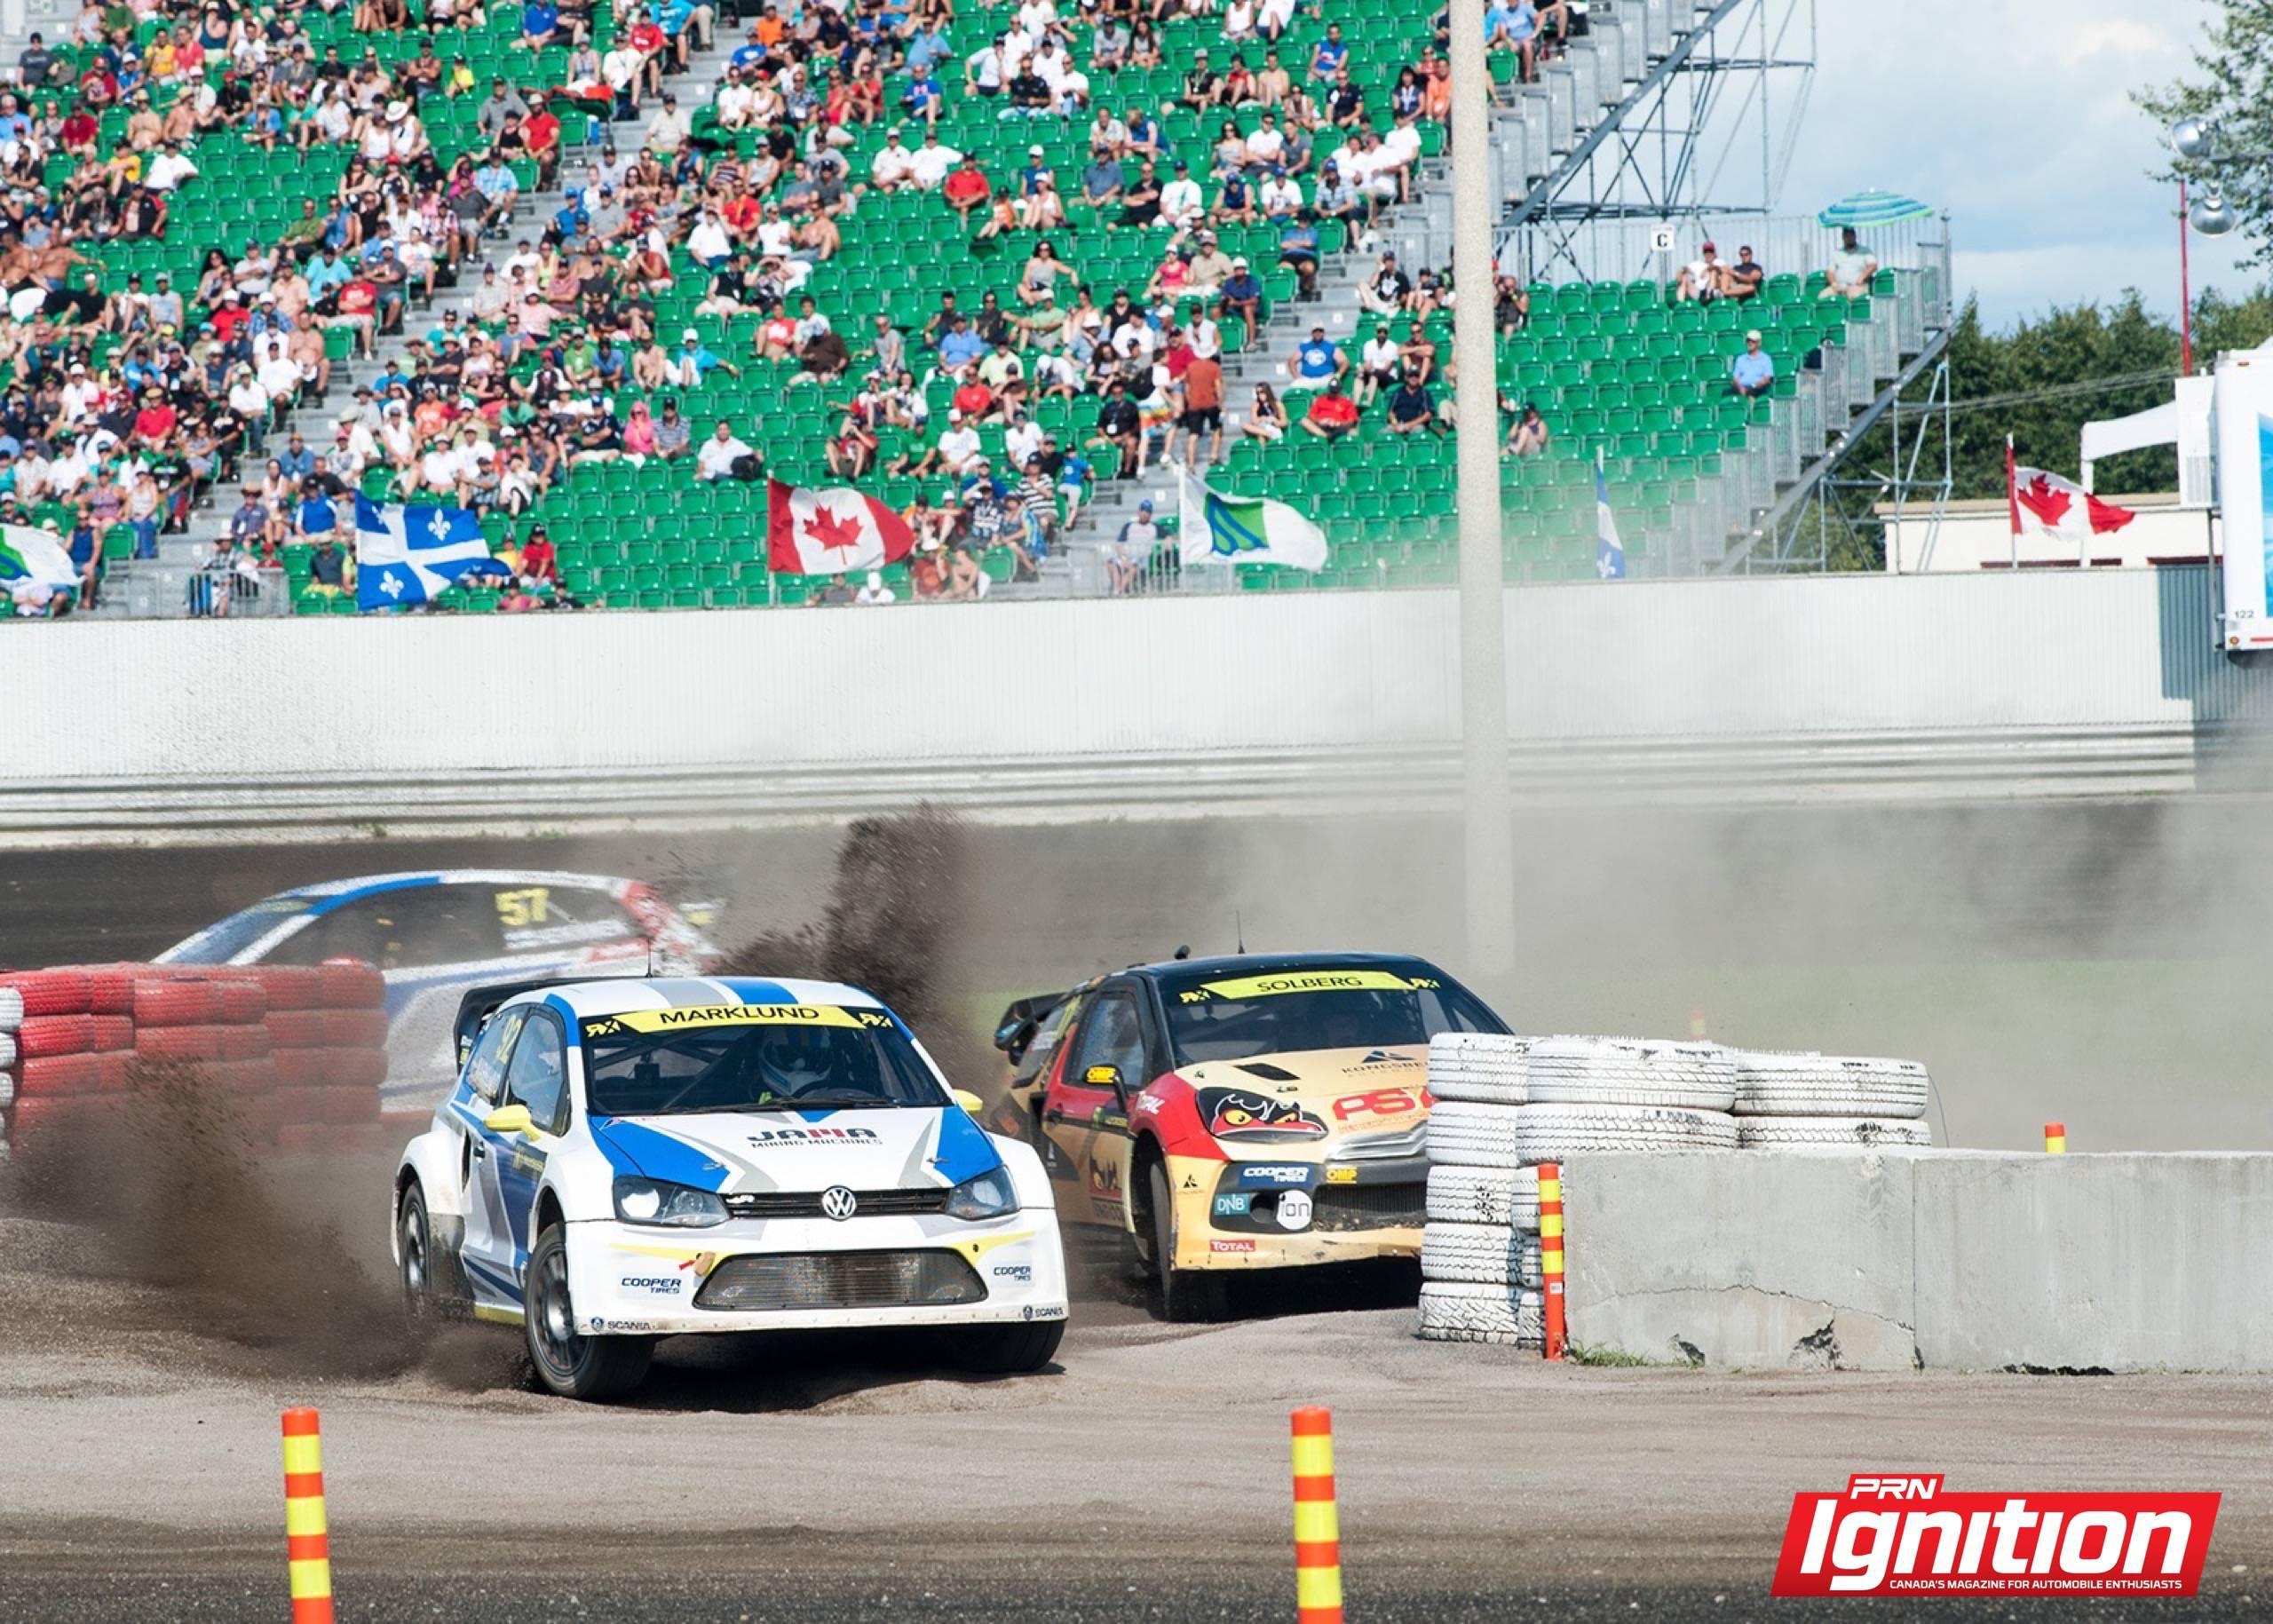 Rally-X Continues Global Assault Ignition 014